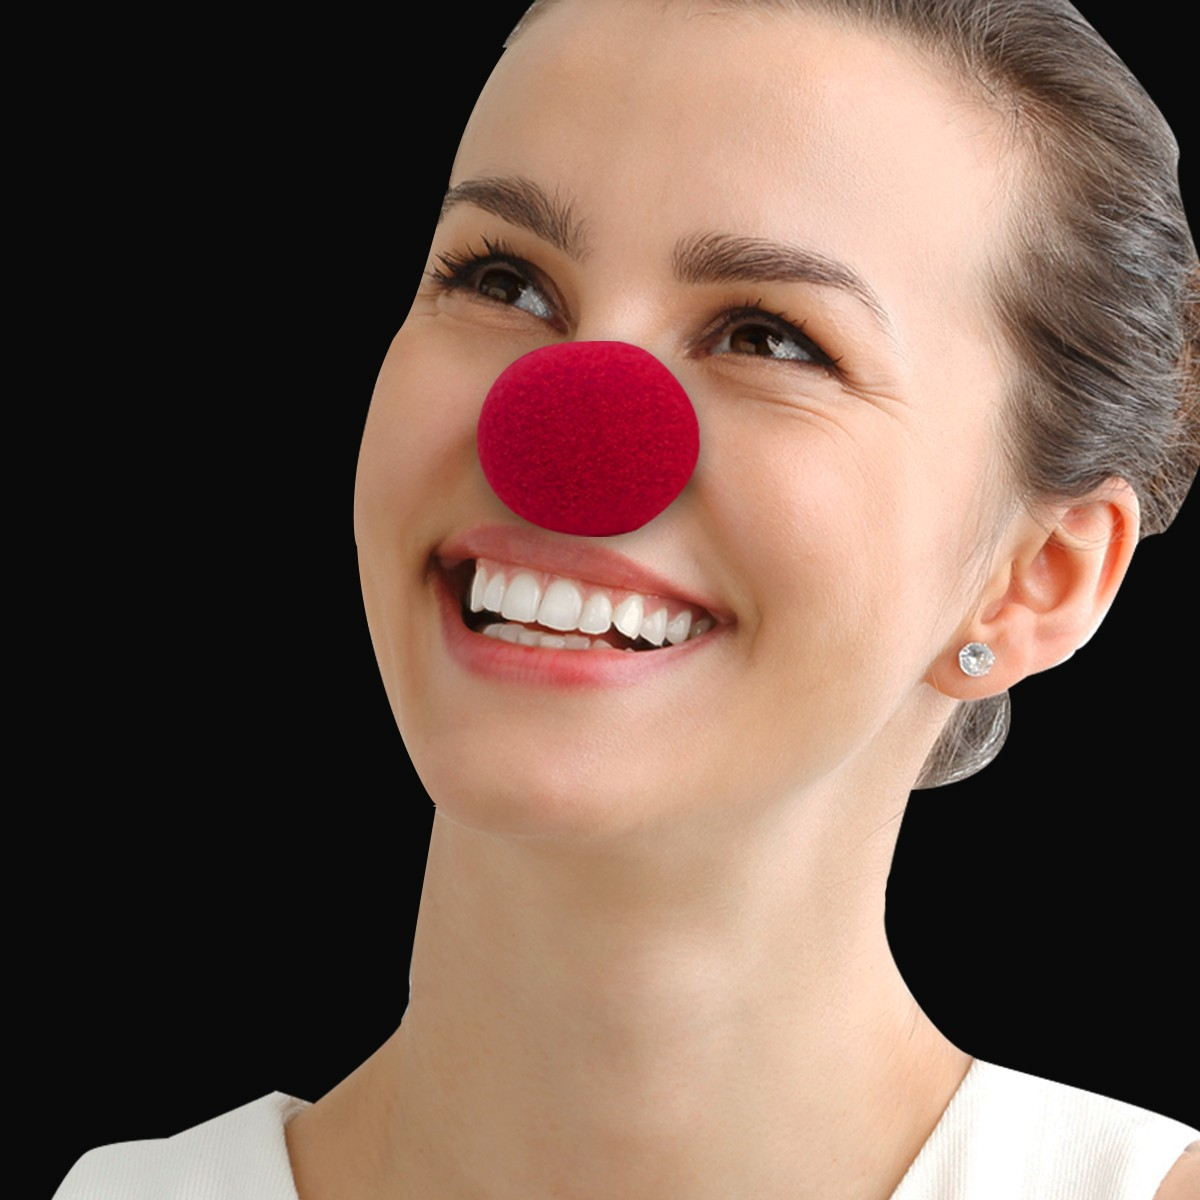 2 INCH FOAM CLOWN NOSE